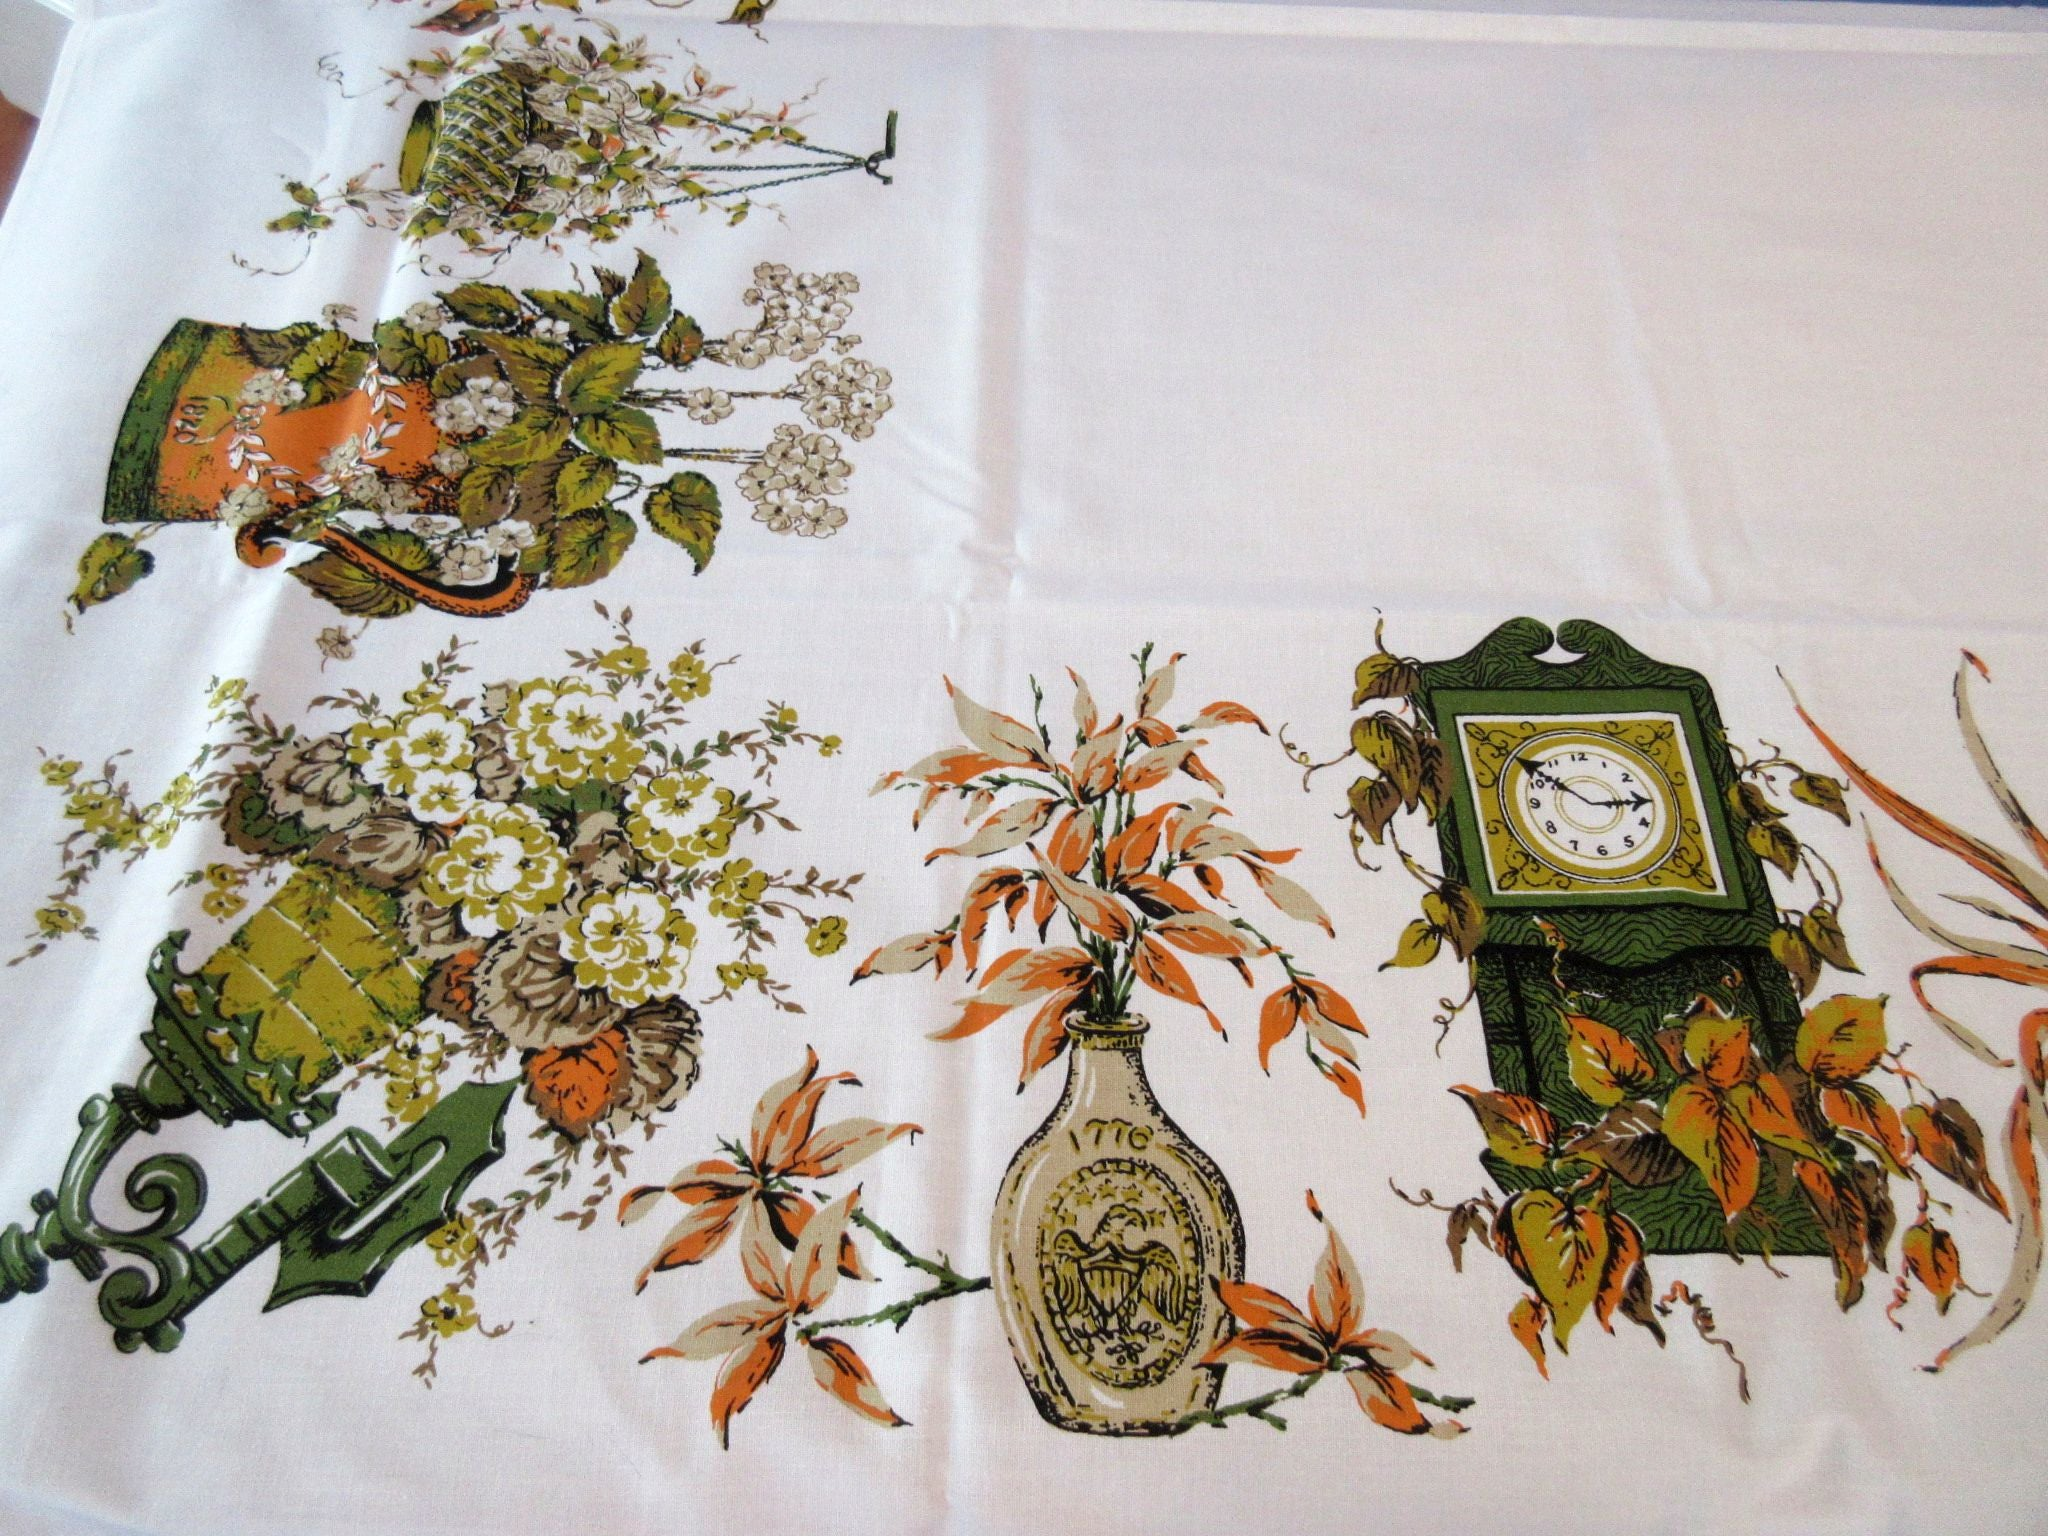 1960s Fall Colonial Pitchers Clocks MWT Novelty Vintage Printed Tablecloth (67 X 49)